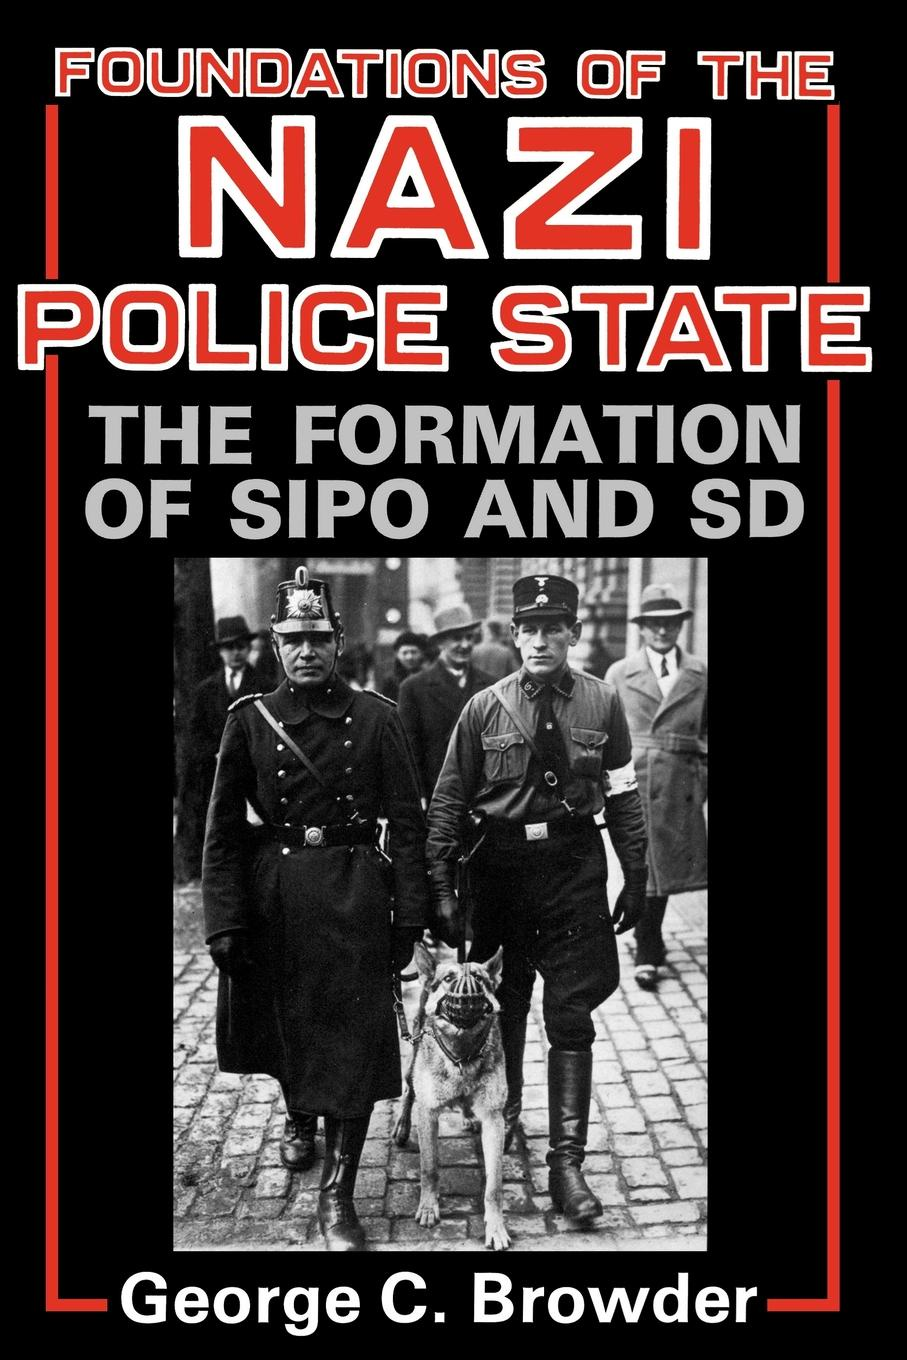 George C. Browder Foundations of the Nazi Police State. The Formation of Sipo and SD kingston george frederick the foundations of faith